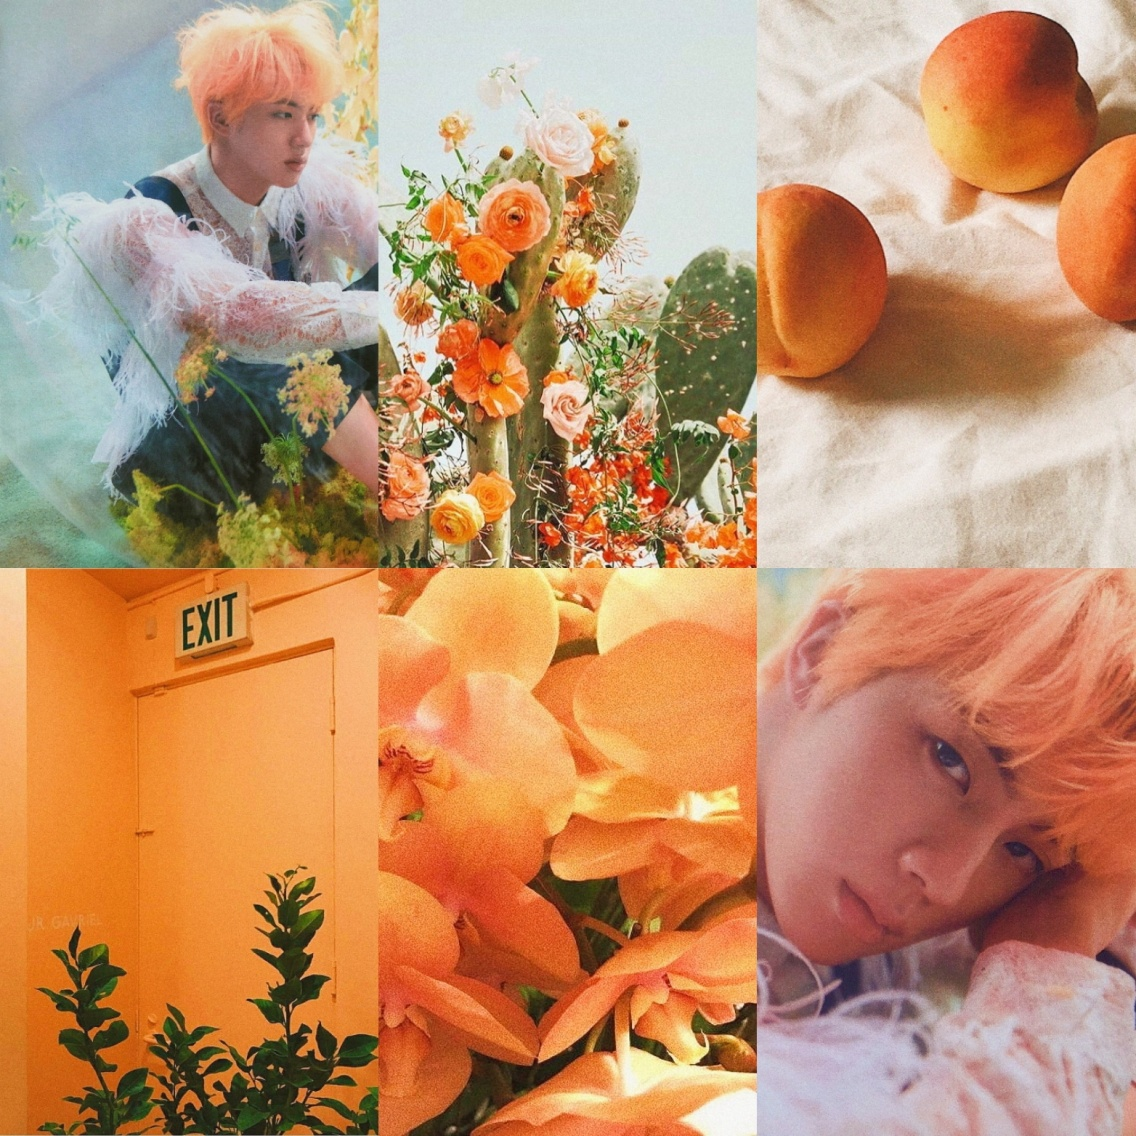 Kim Seokjin Orange Aesthetic Edit By Me Bts Jin Seokjin Aesthetic Collage Edit Orange Model Photography Peach Plants Yoonji Collages Vsco